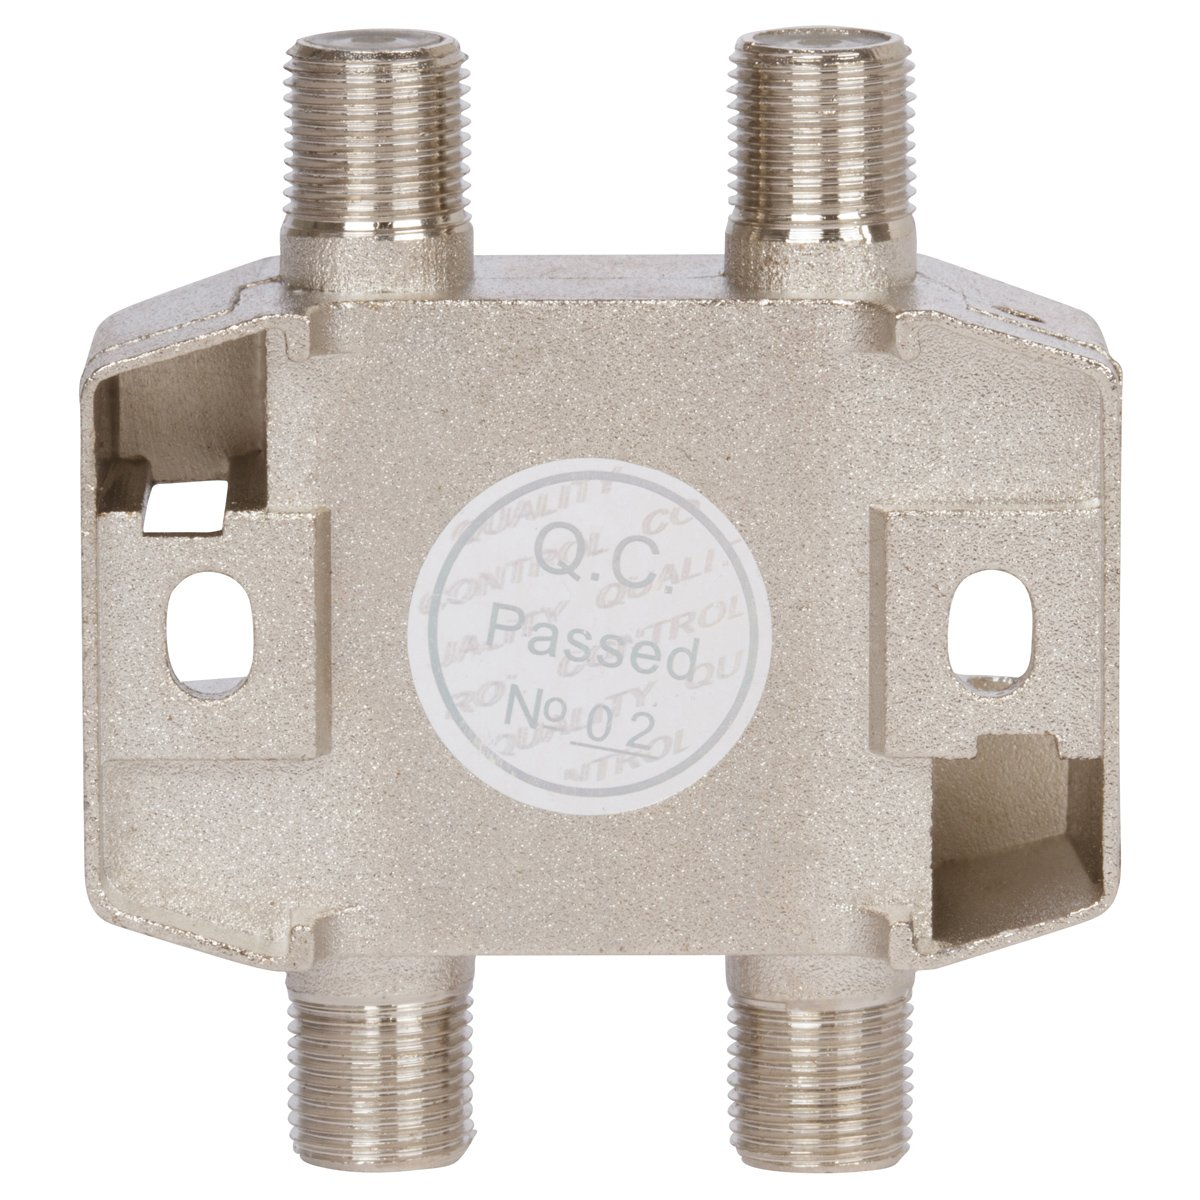 BAMF 3-Way Coax Cable Splitter Bi-Directional MoCA 5-2300MHz by BAMF Manufacturing (Image #1)